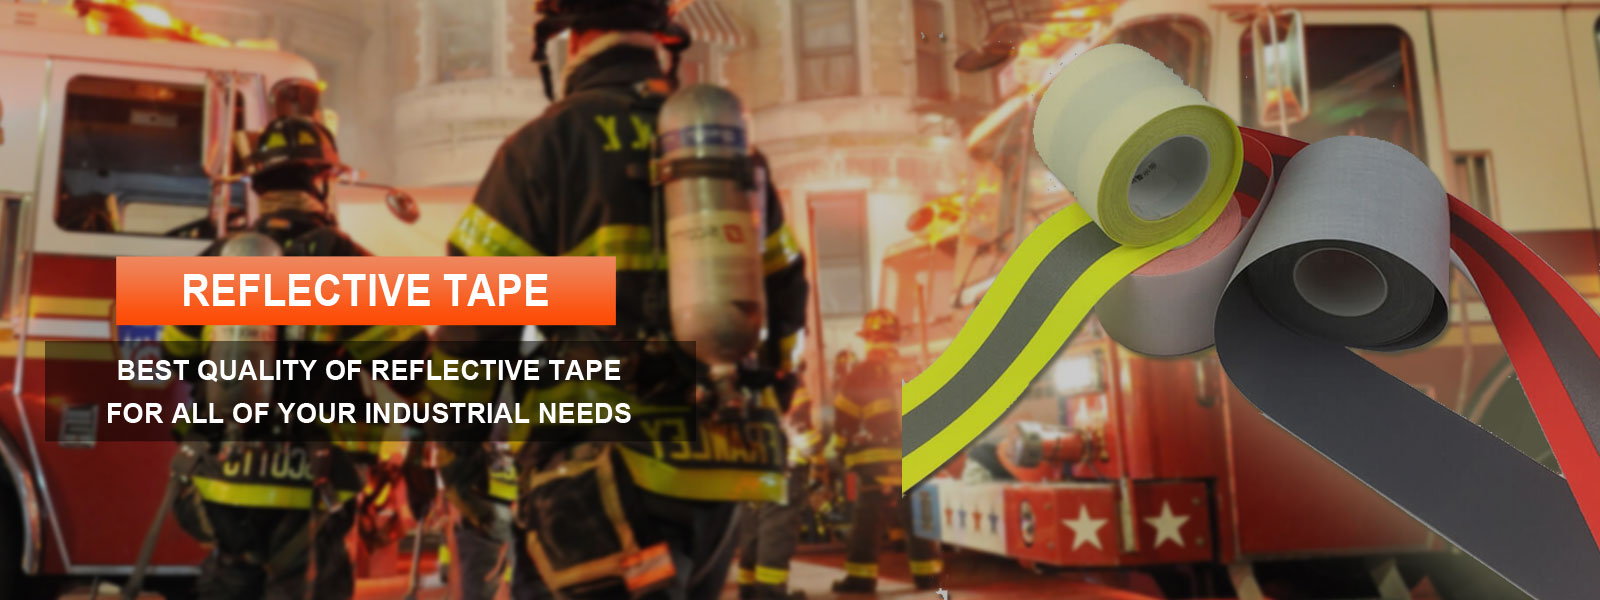 Reflective Tape Manufacturers in Dublin